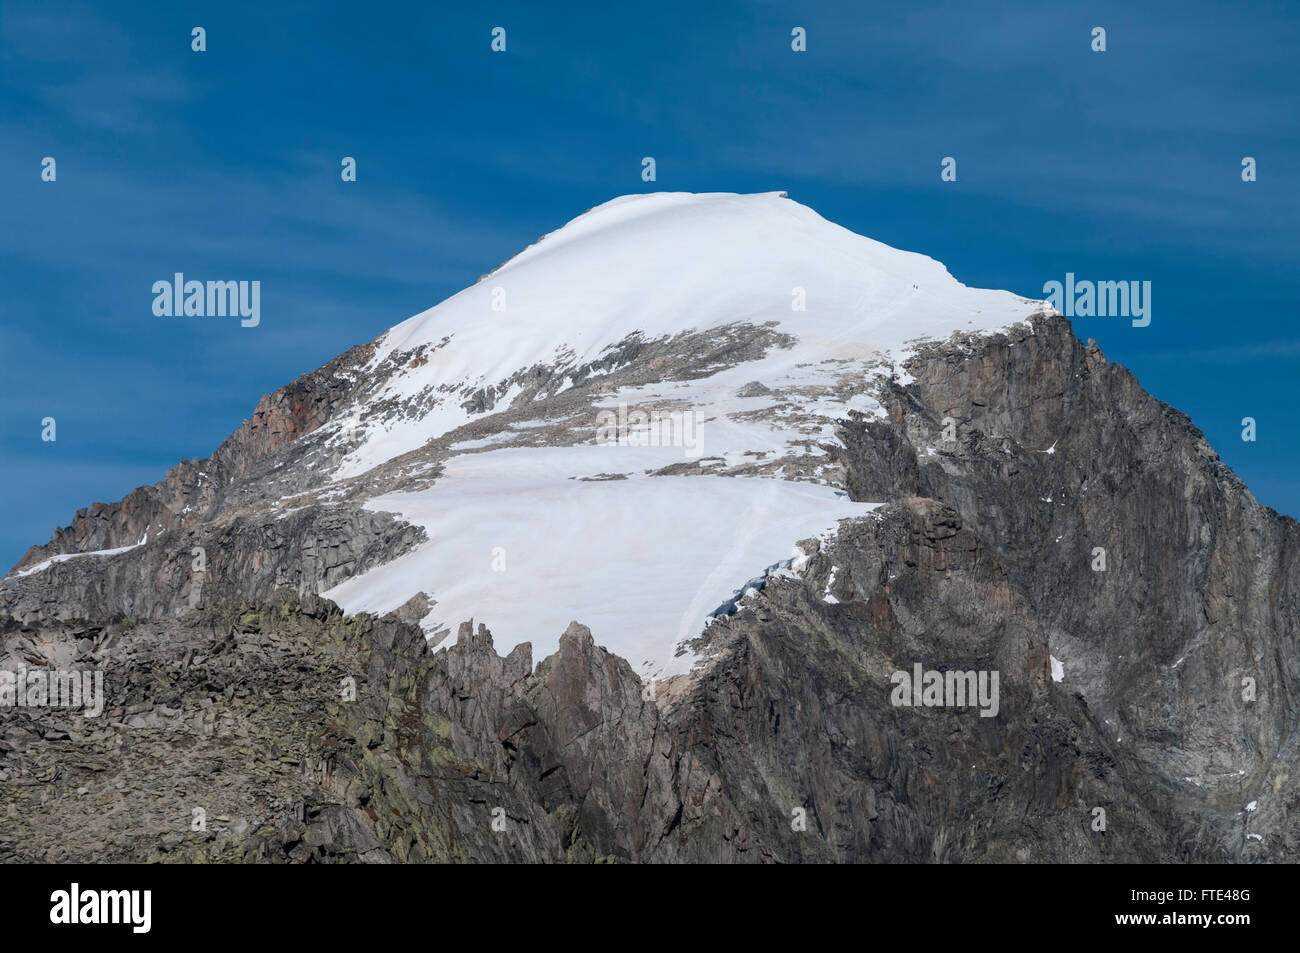 Galenstock (3586 m/11765 ft), a mountain in the Swiss Alps, seen from south. Cantons of Uri and Valais, Switzerland. - Stock Image